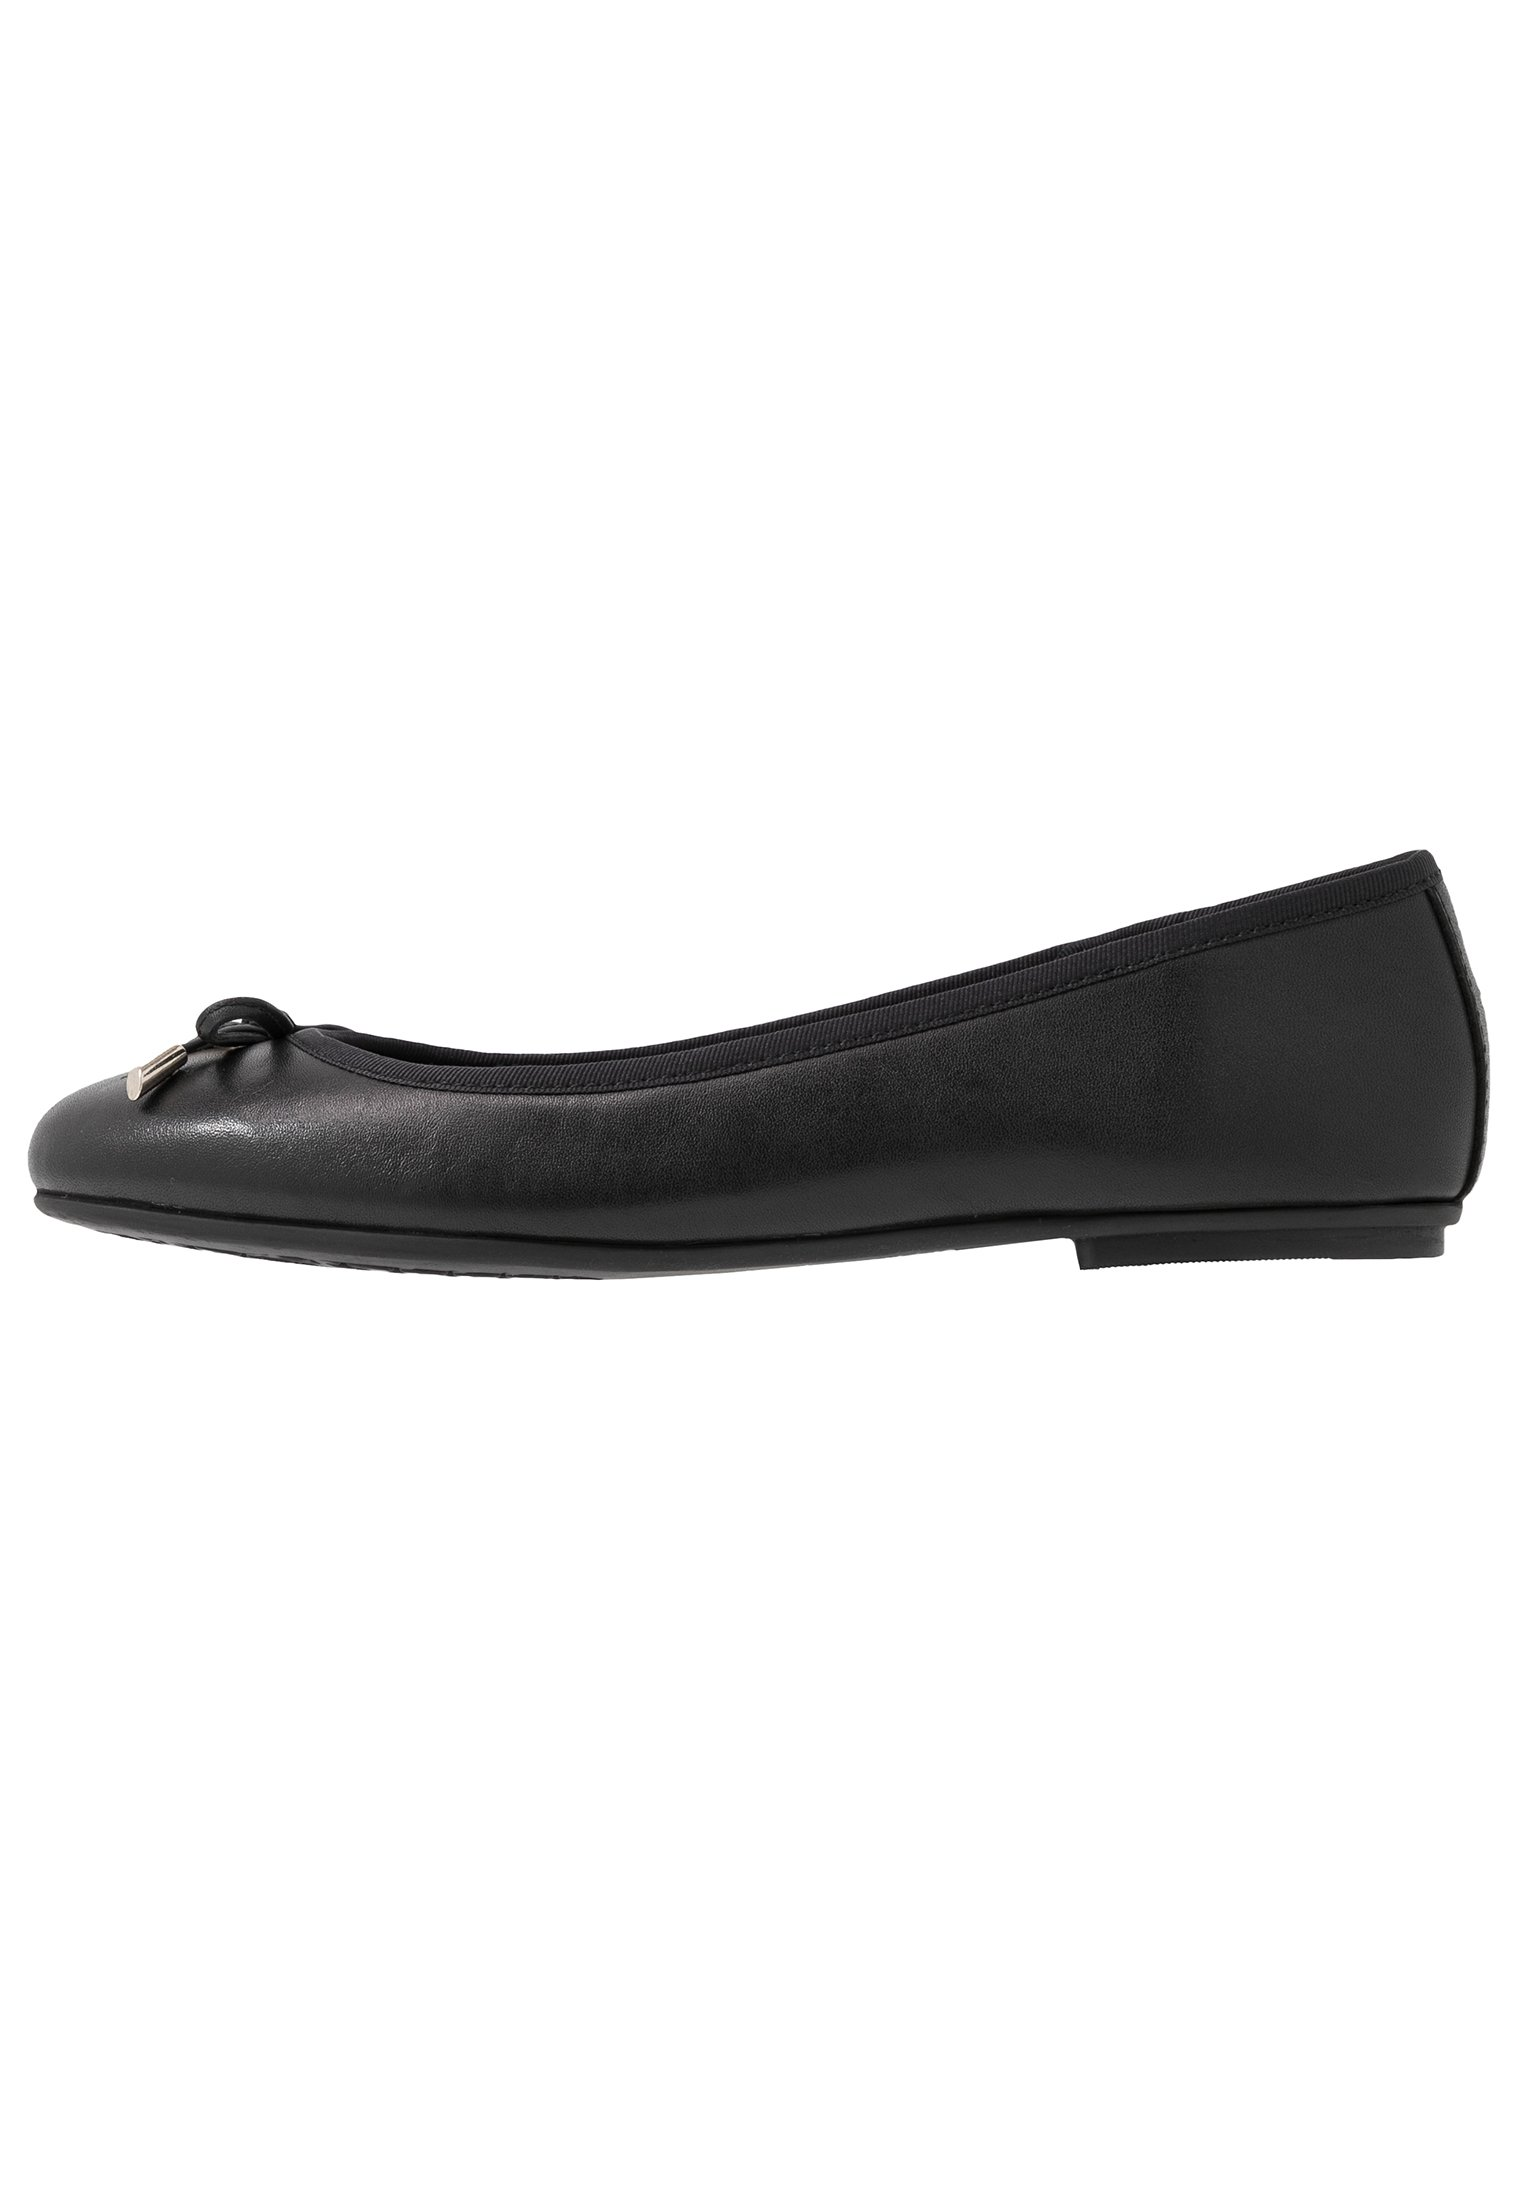 Tommy Hilfiger Elevated Th Hardware Ballerina - Klassischer Black Friday